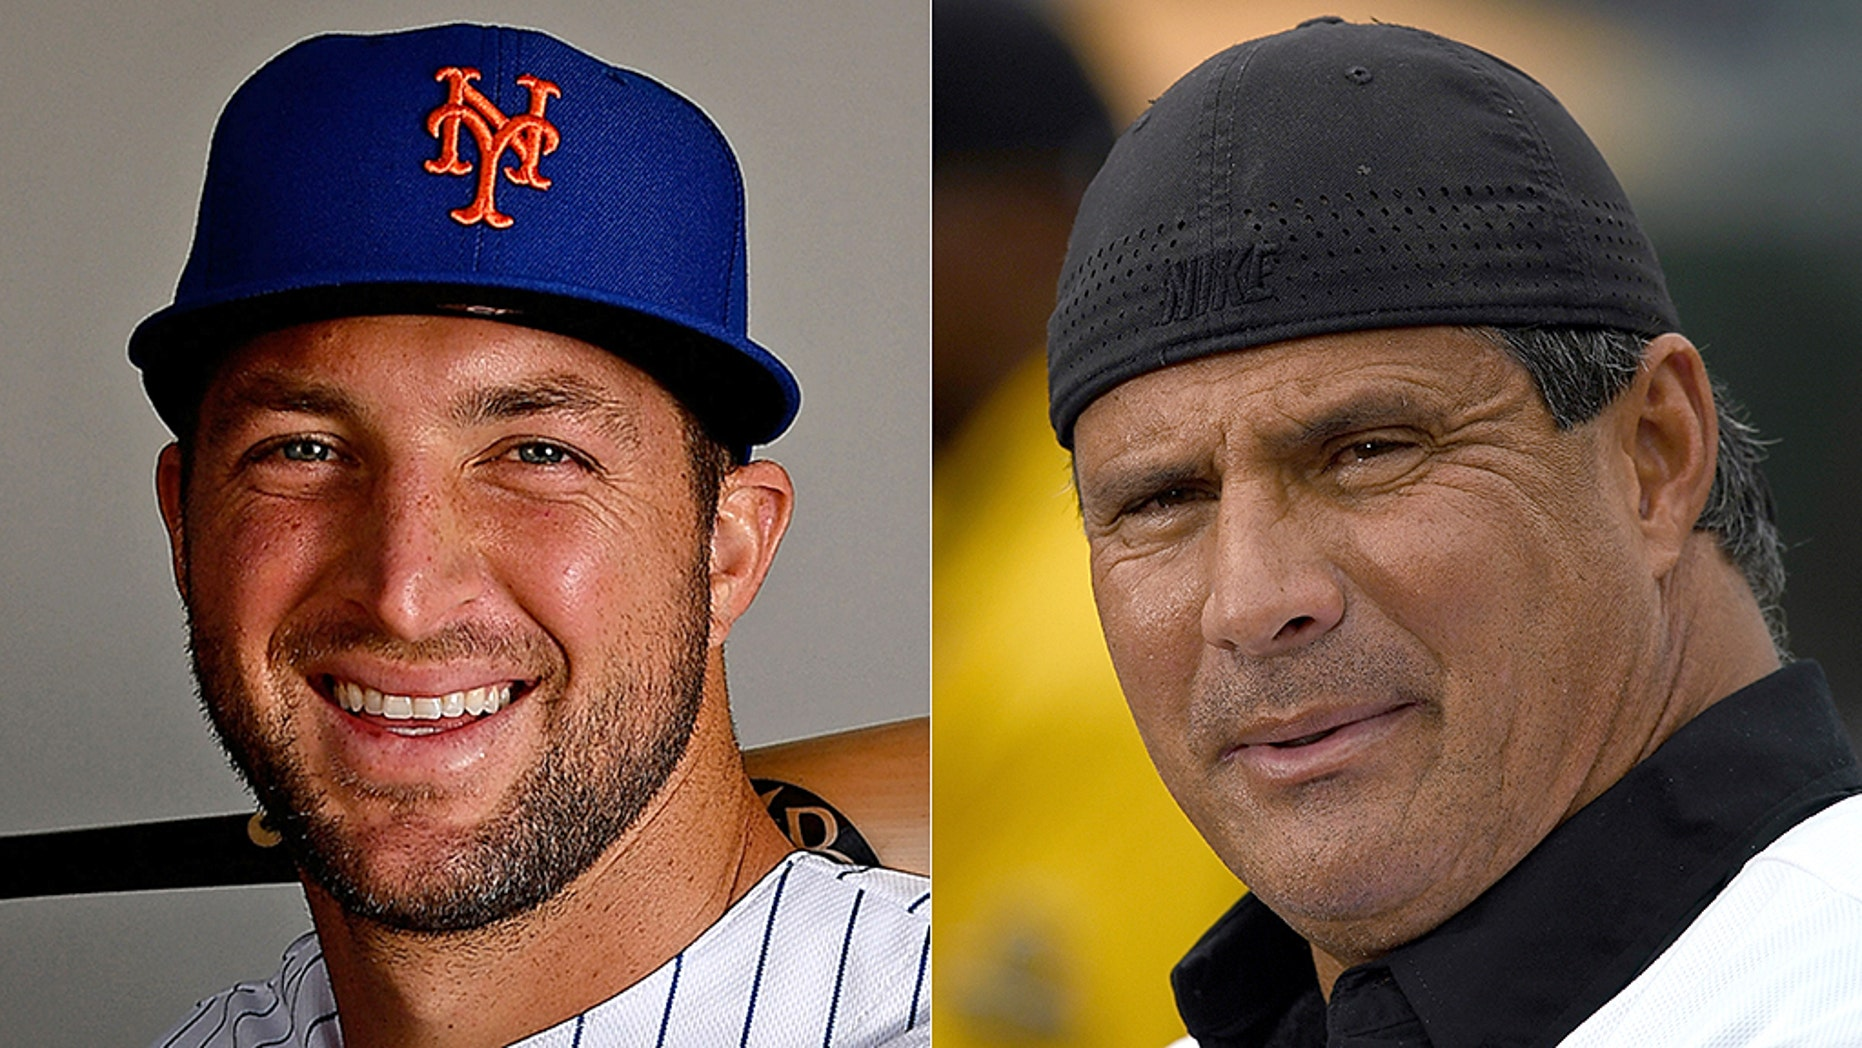 Could Jose Canseco help Tim Tebow crush dingers?